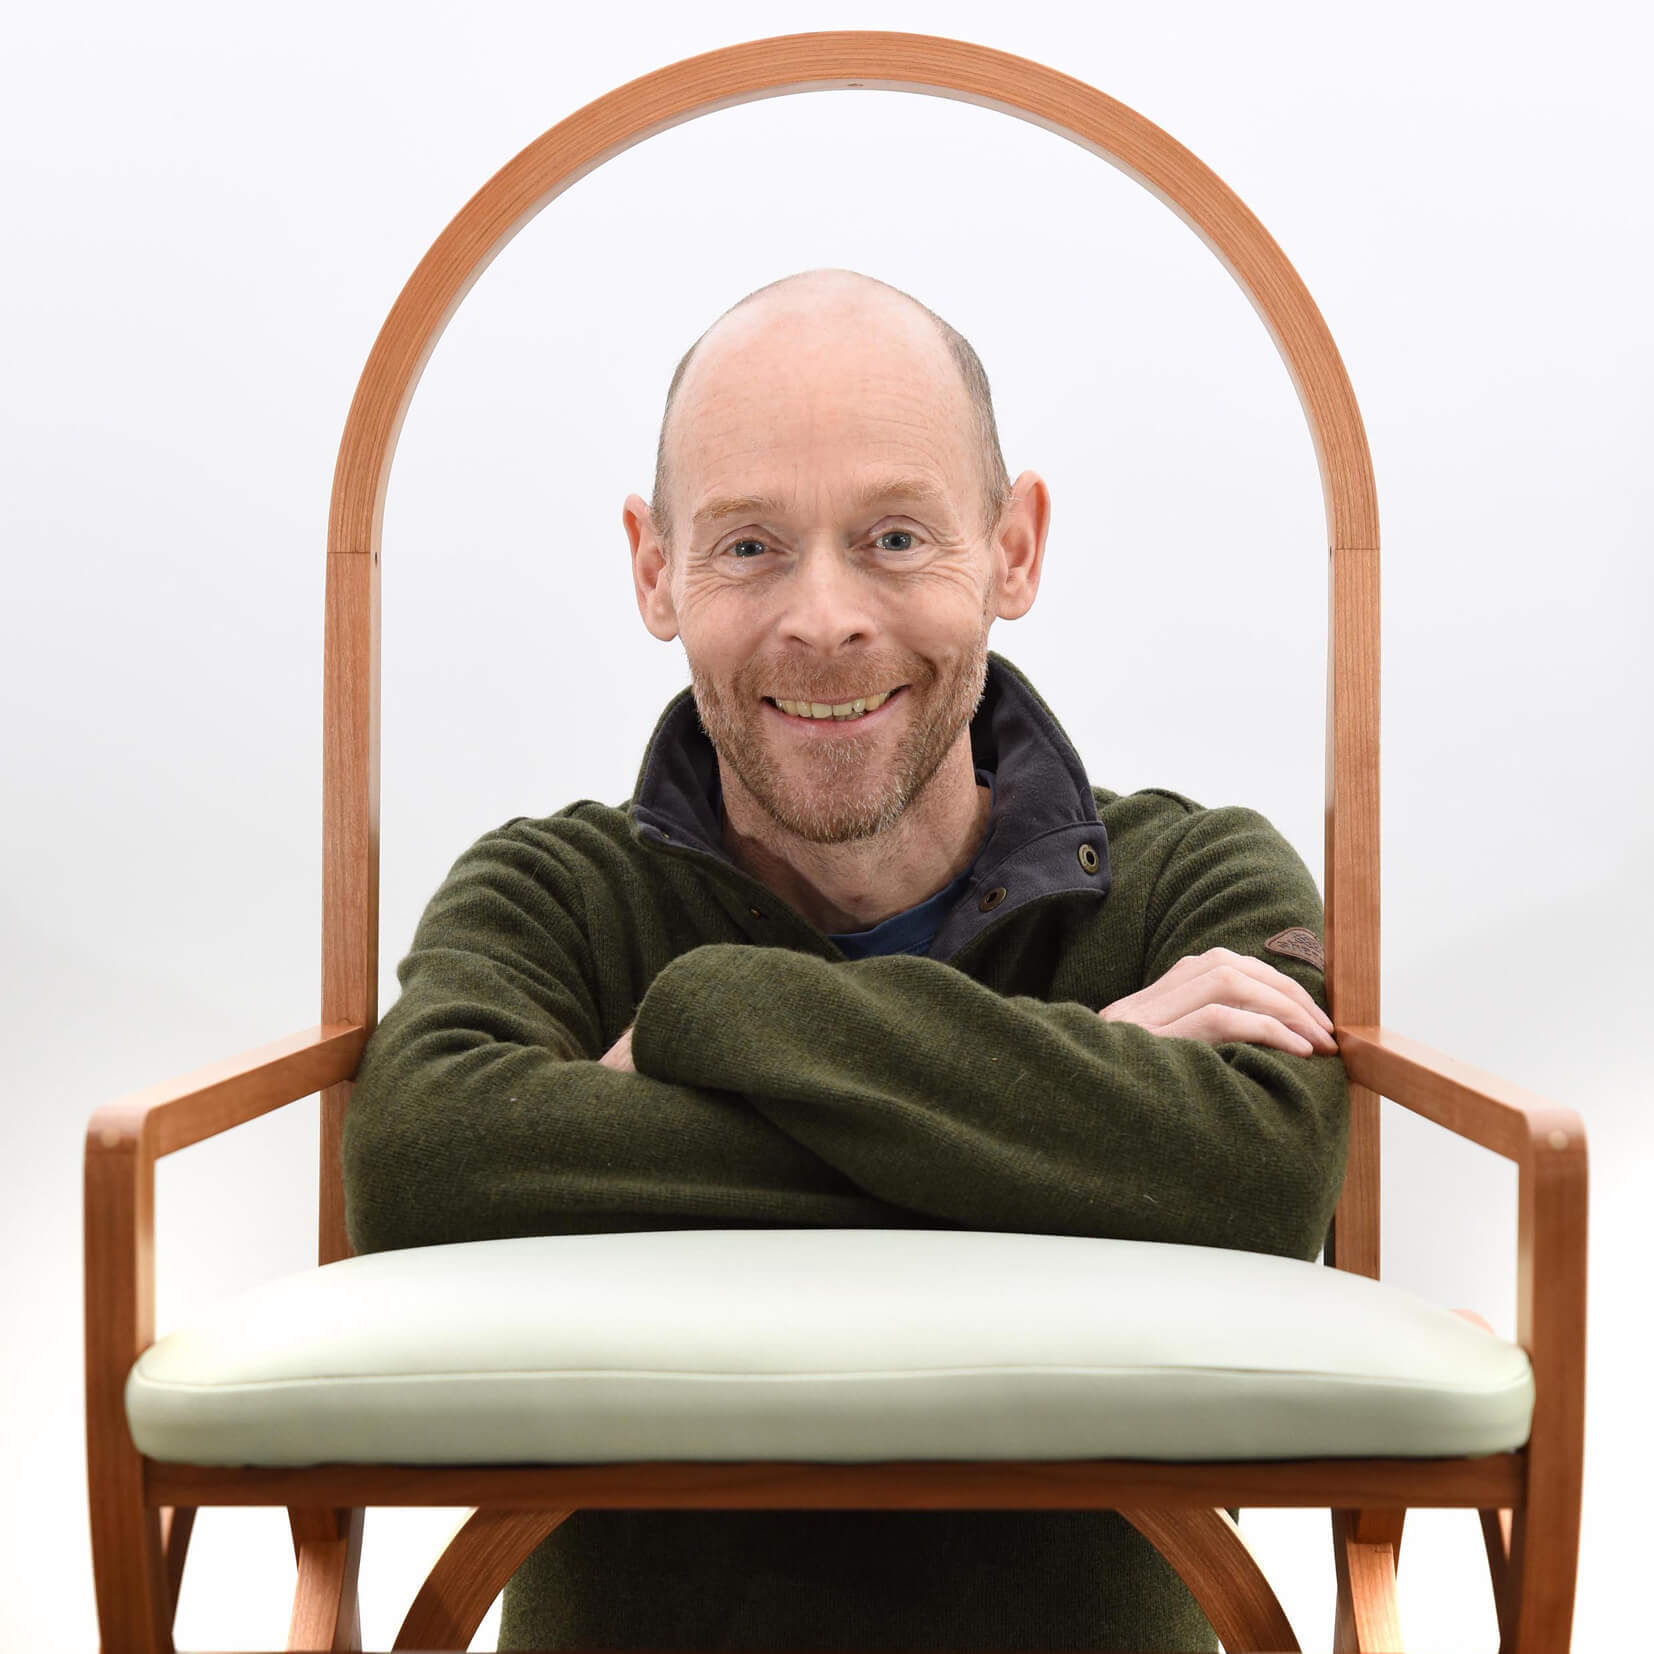 BESPOKE DESIGN: Richard Frost has gone back to the drawing board for career change